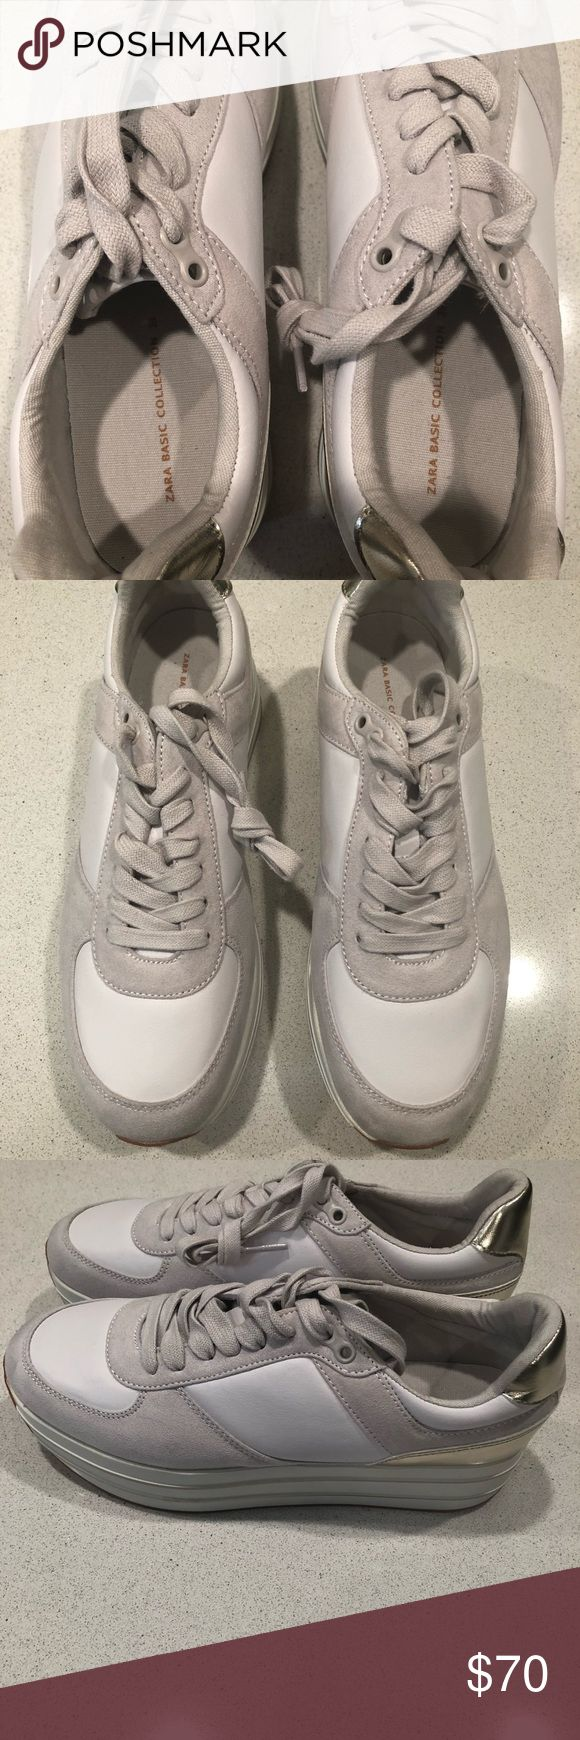 New Zara platform Tennis Shoe Size 8 (39) New never worn Zara Platform Tennis Shoe from the Zara Basic Collection. White and Gray with Gold detail. Zara Shoes Platforms